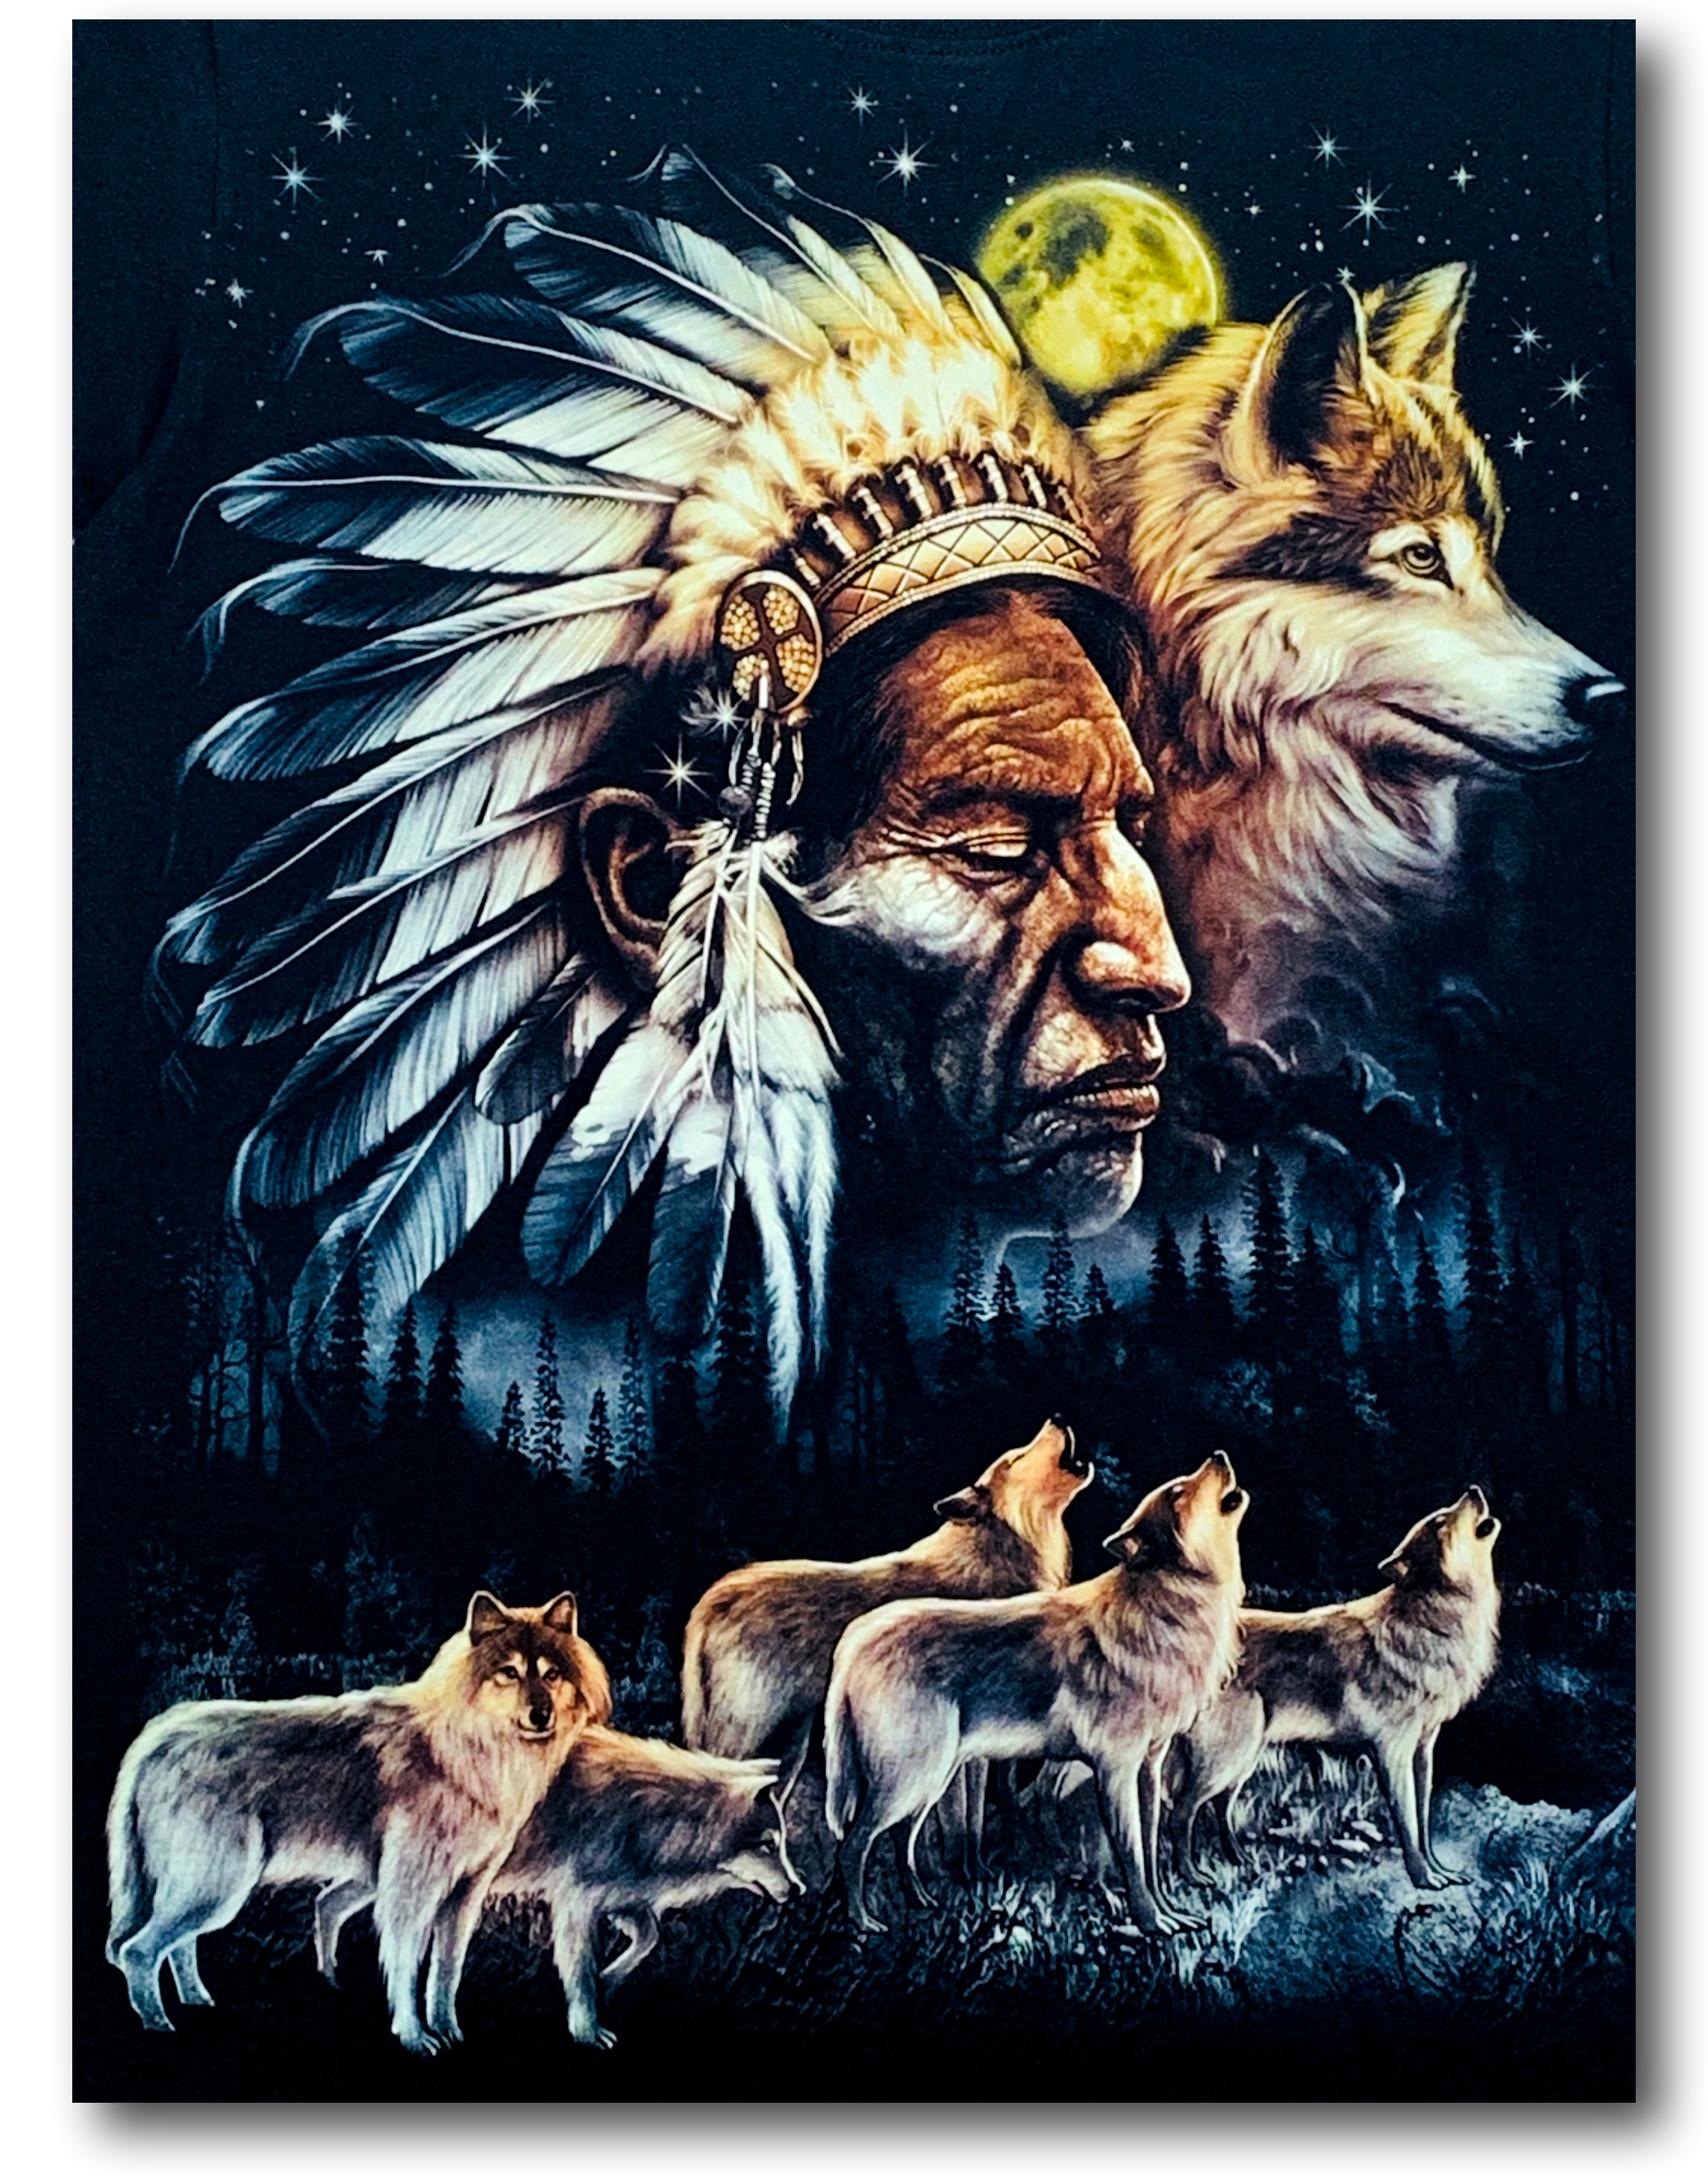 Native Indian Moon and Wolf Glow in the Dark HD Rock Chang T-Shirt